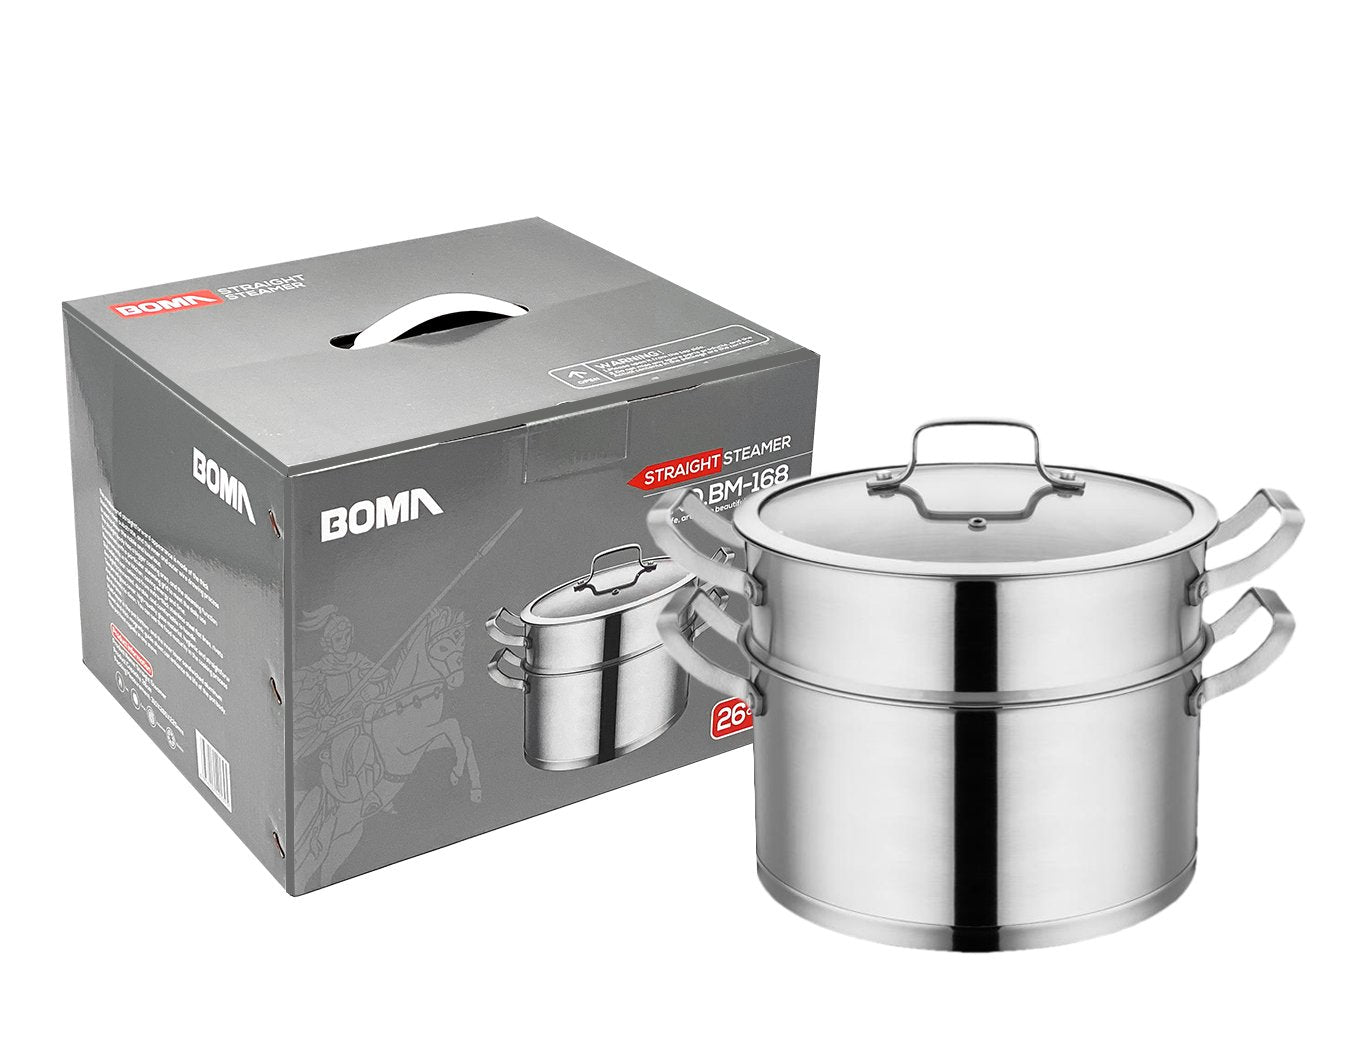 BOMA Stainless Steel 3-Piece 6-Quart 2-Tier Pasta/Steamer Set - Tempered Glass Lid, Dishwasher Safe, Double Handles